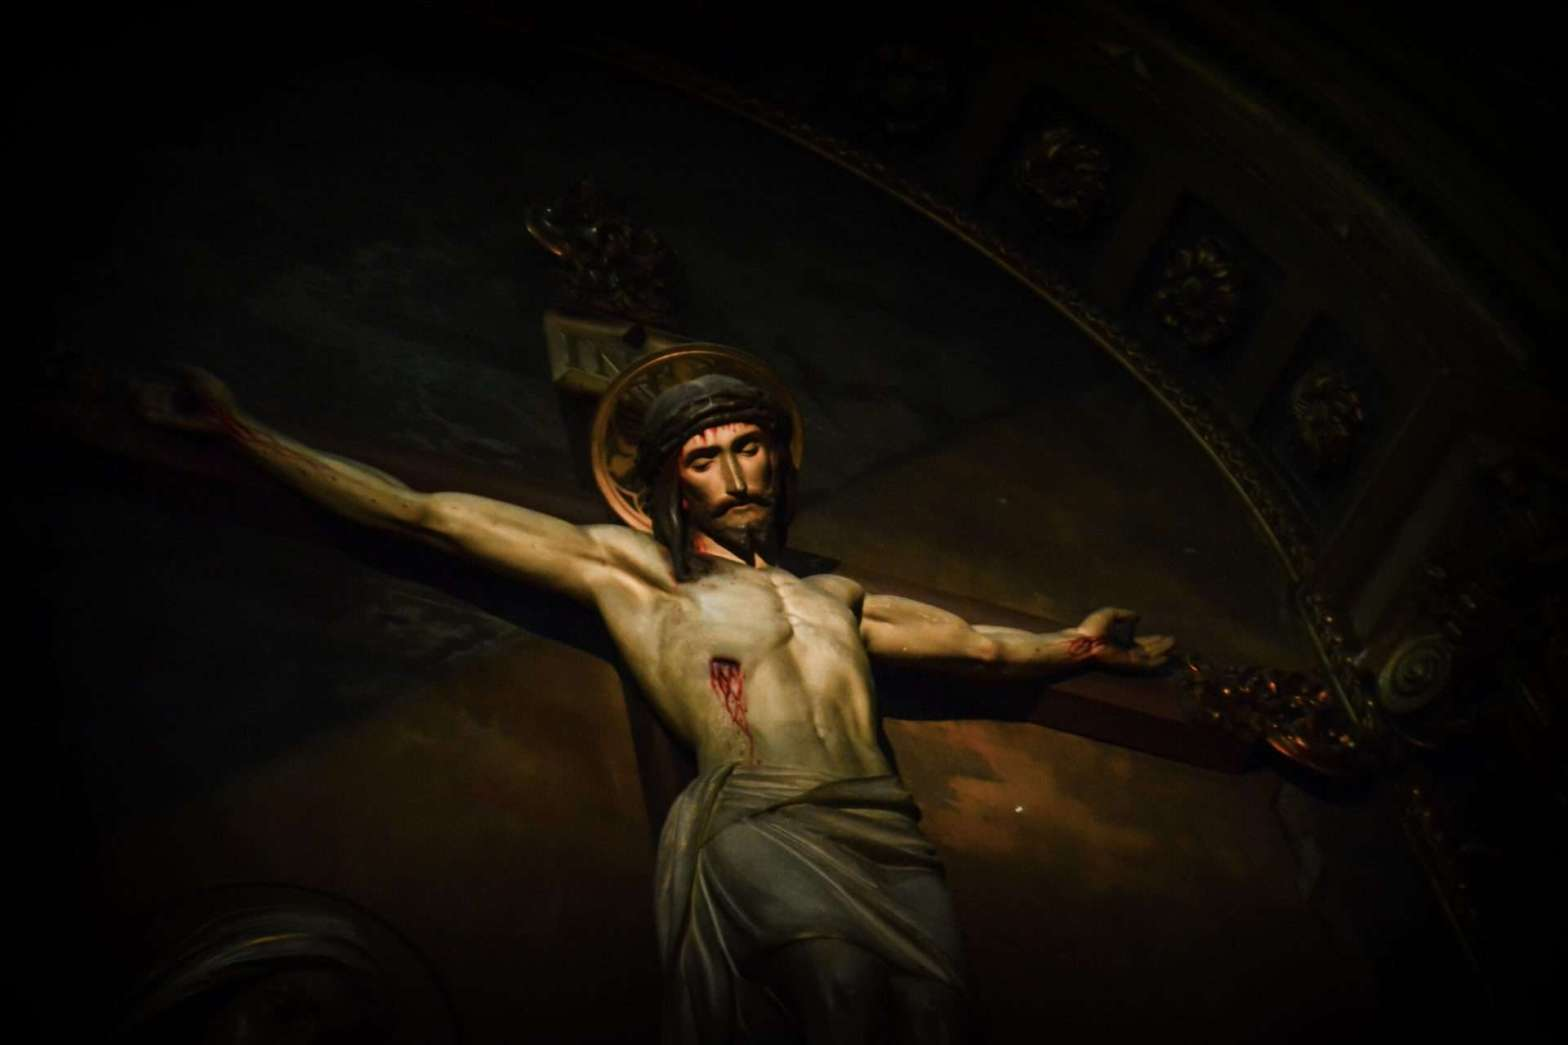 Are Catholics cannibals for consuming Jesus' flesh and blood?